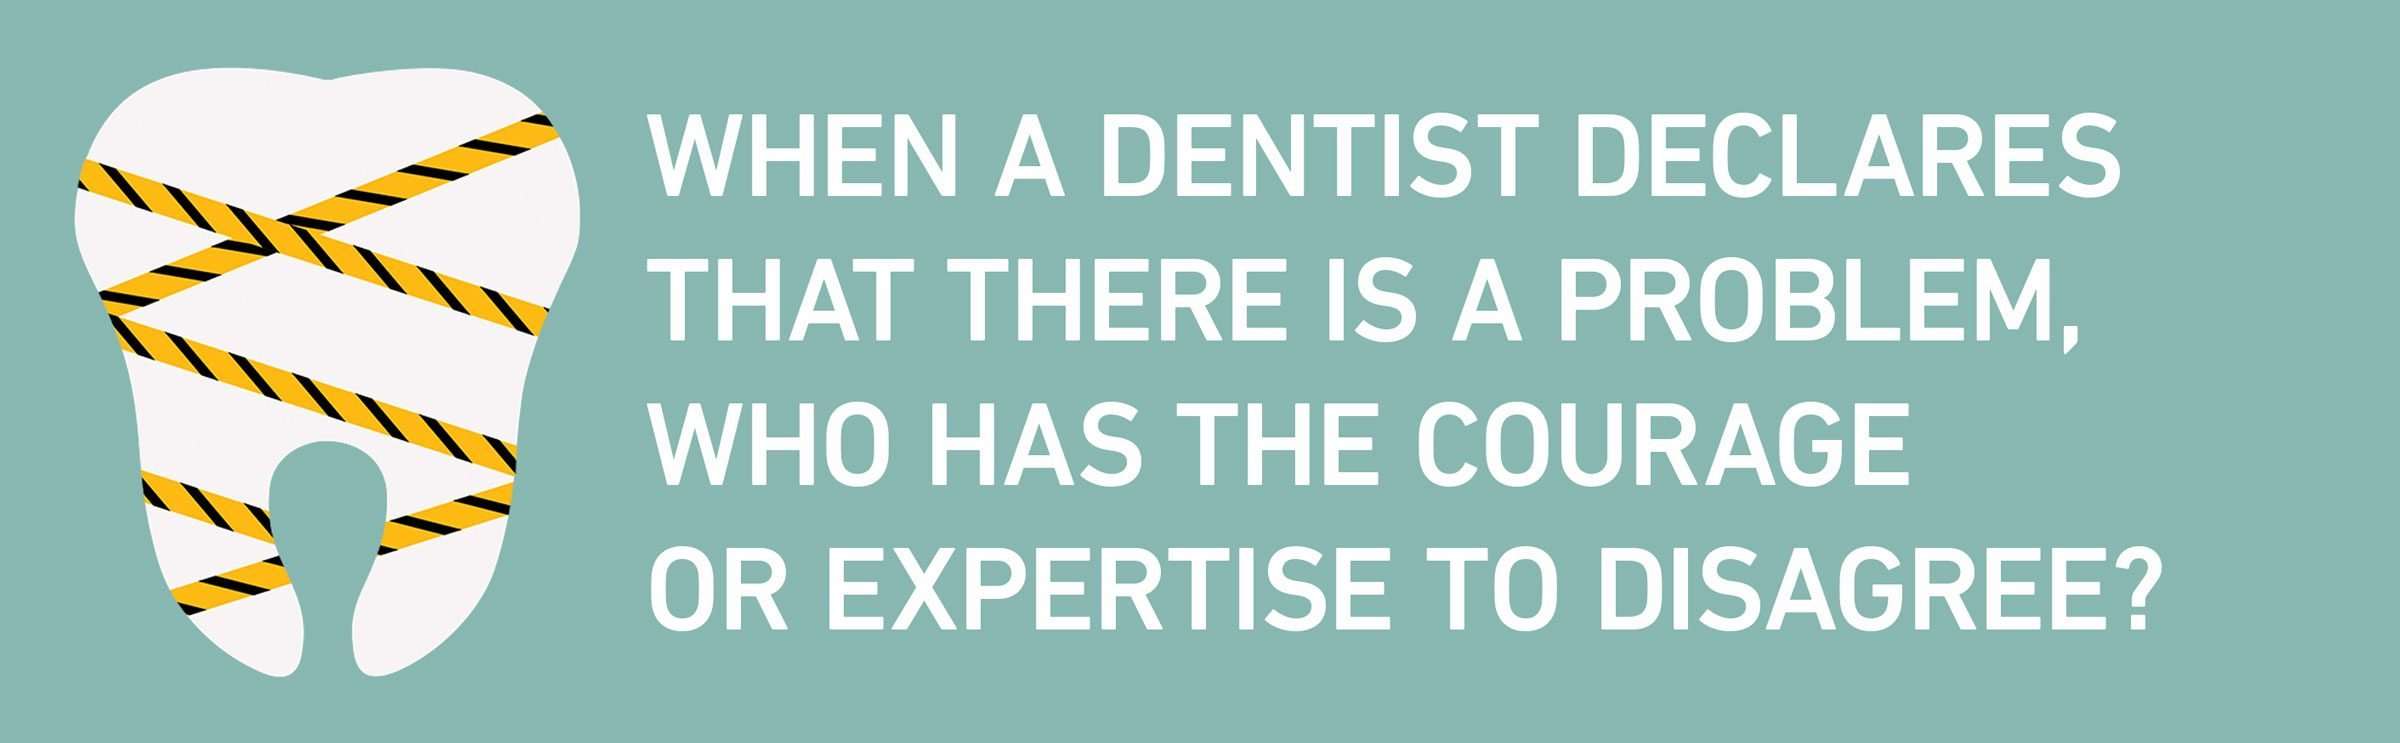 text: When a dentist declares that there is a problem, who has the courage or expertise to disagree?